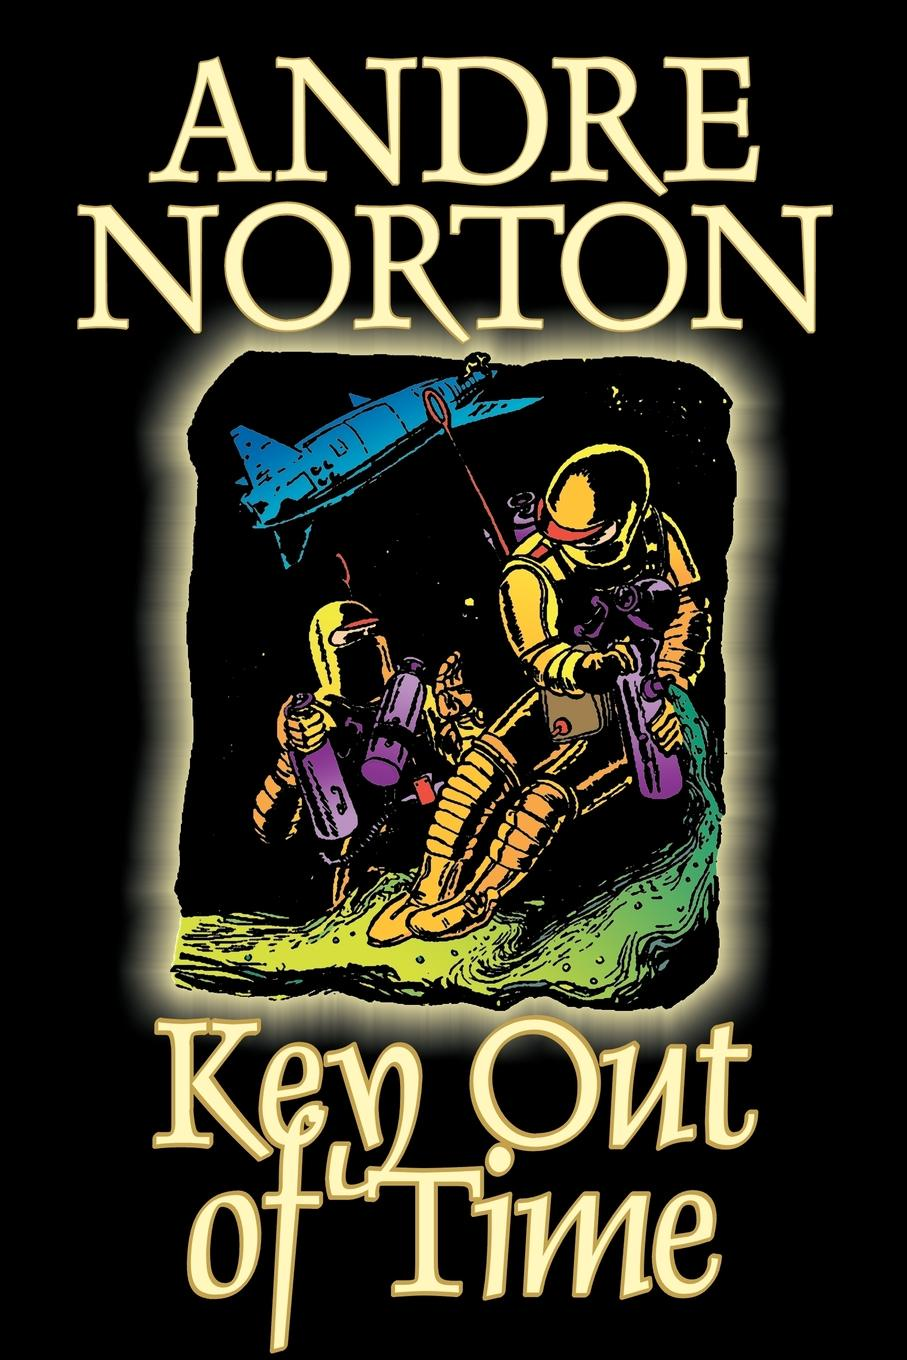 Andre Norton Key Out of Time by Andre Norton, Science Fiction, Adventure a norton wraiths of time